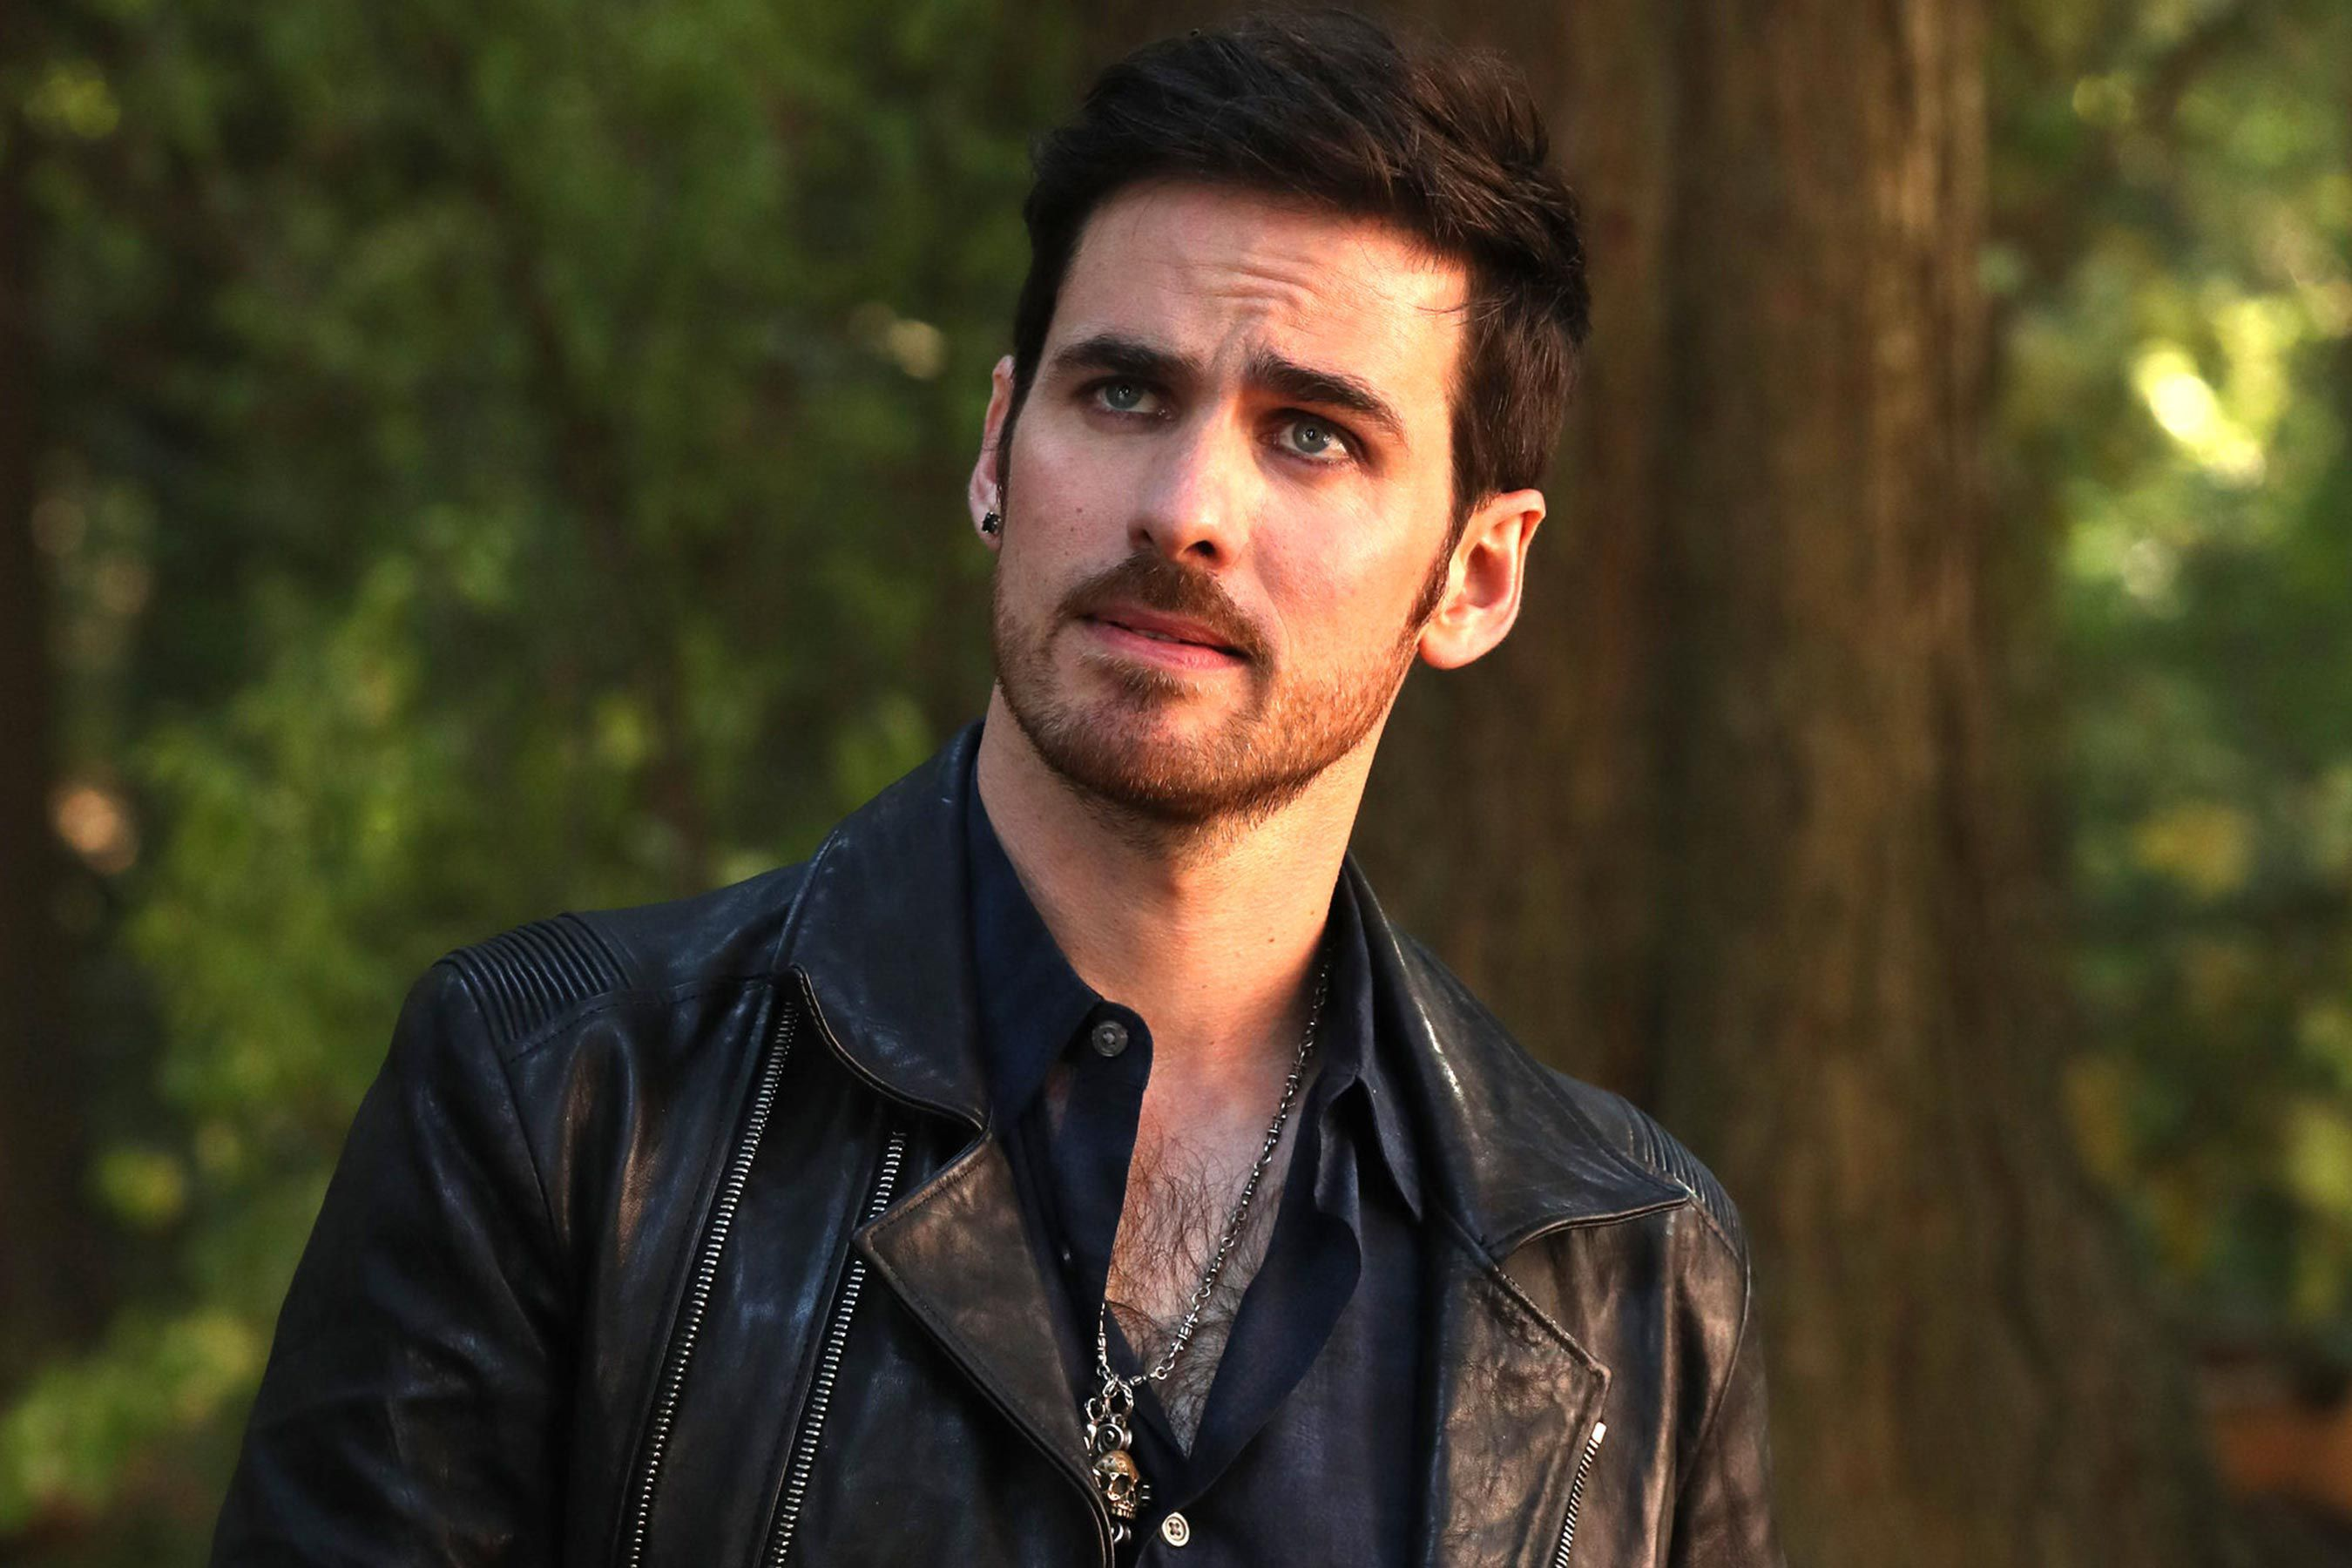 Pin By Ampa On Thomas Adams Colin O Donoghue Once Upon A Time